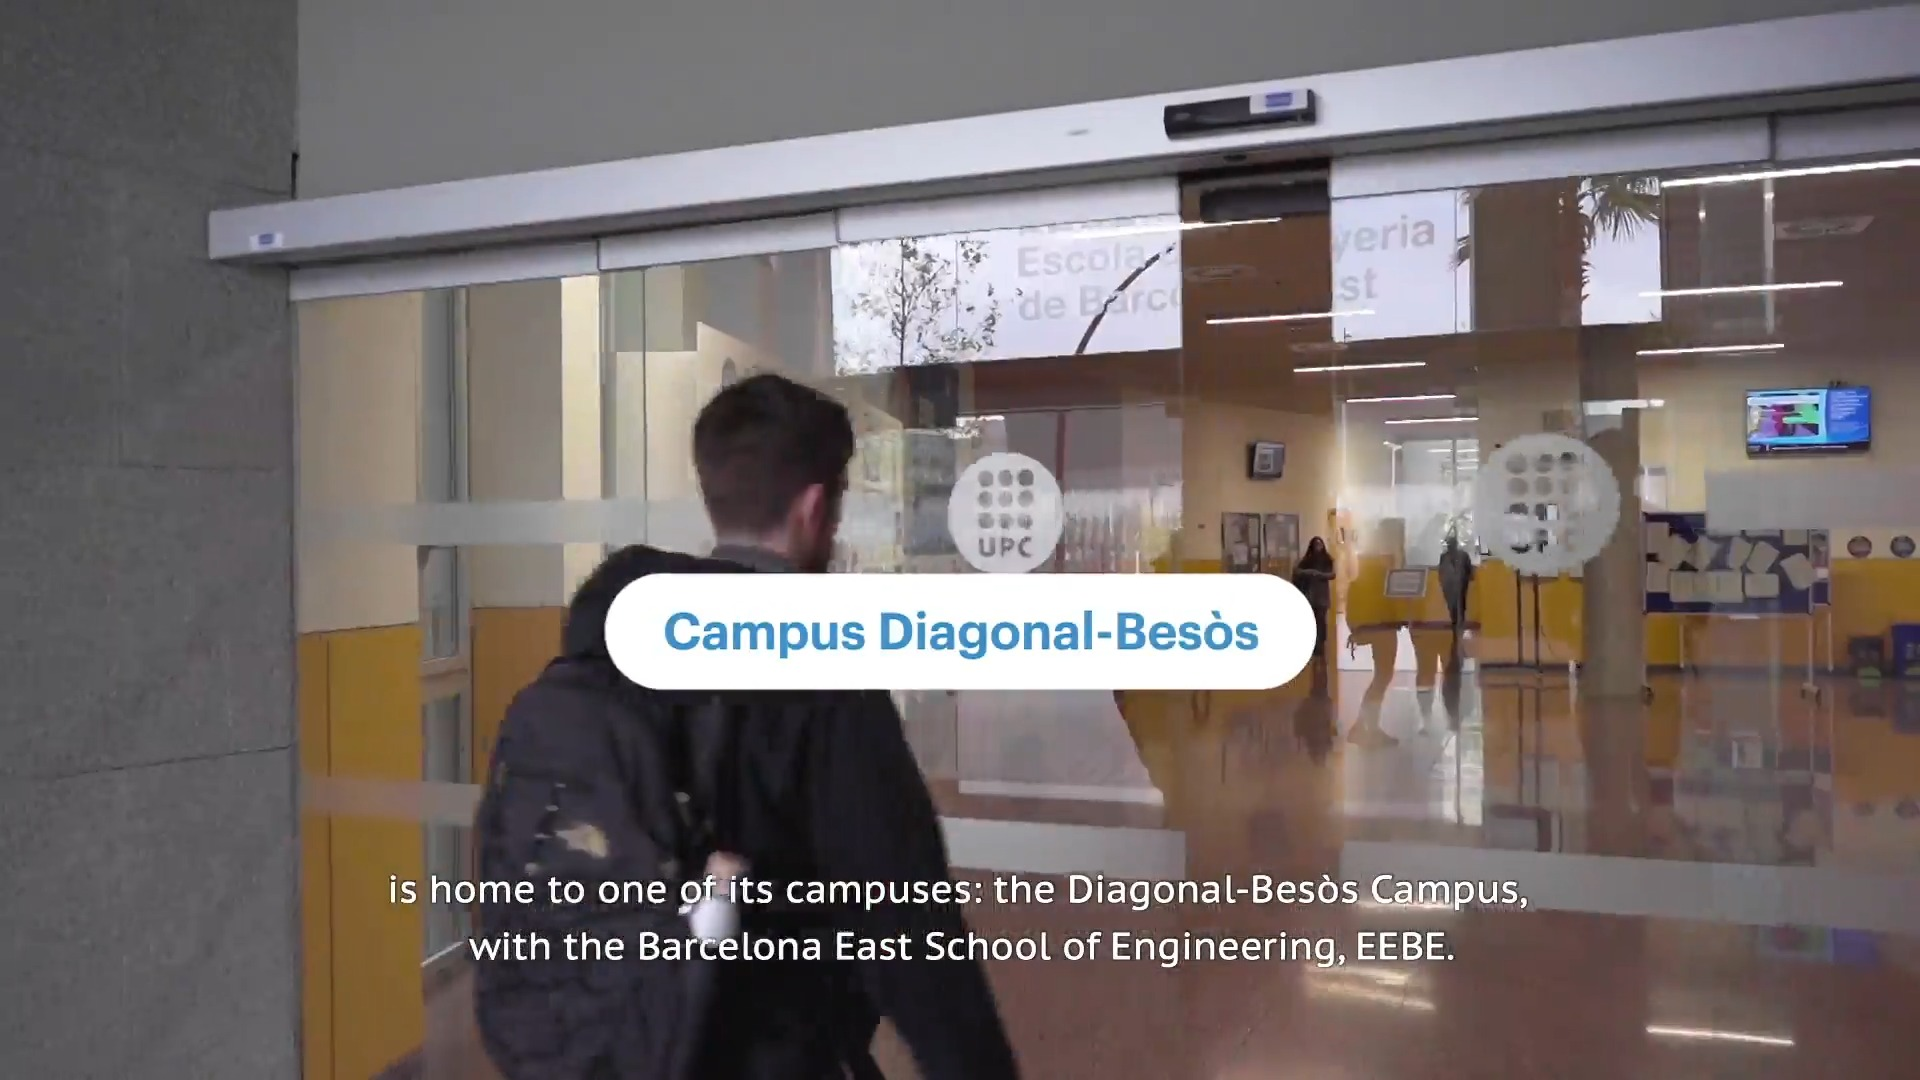 Presentation of Barcelona East School of Engineering (EEBE) at UPC (version with subtitles)